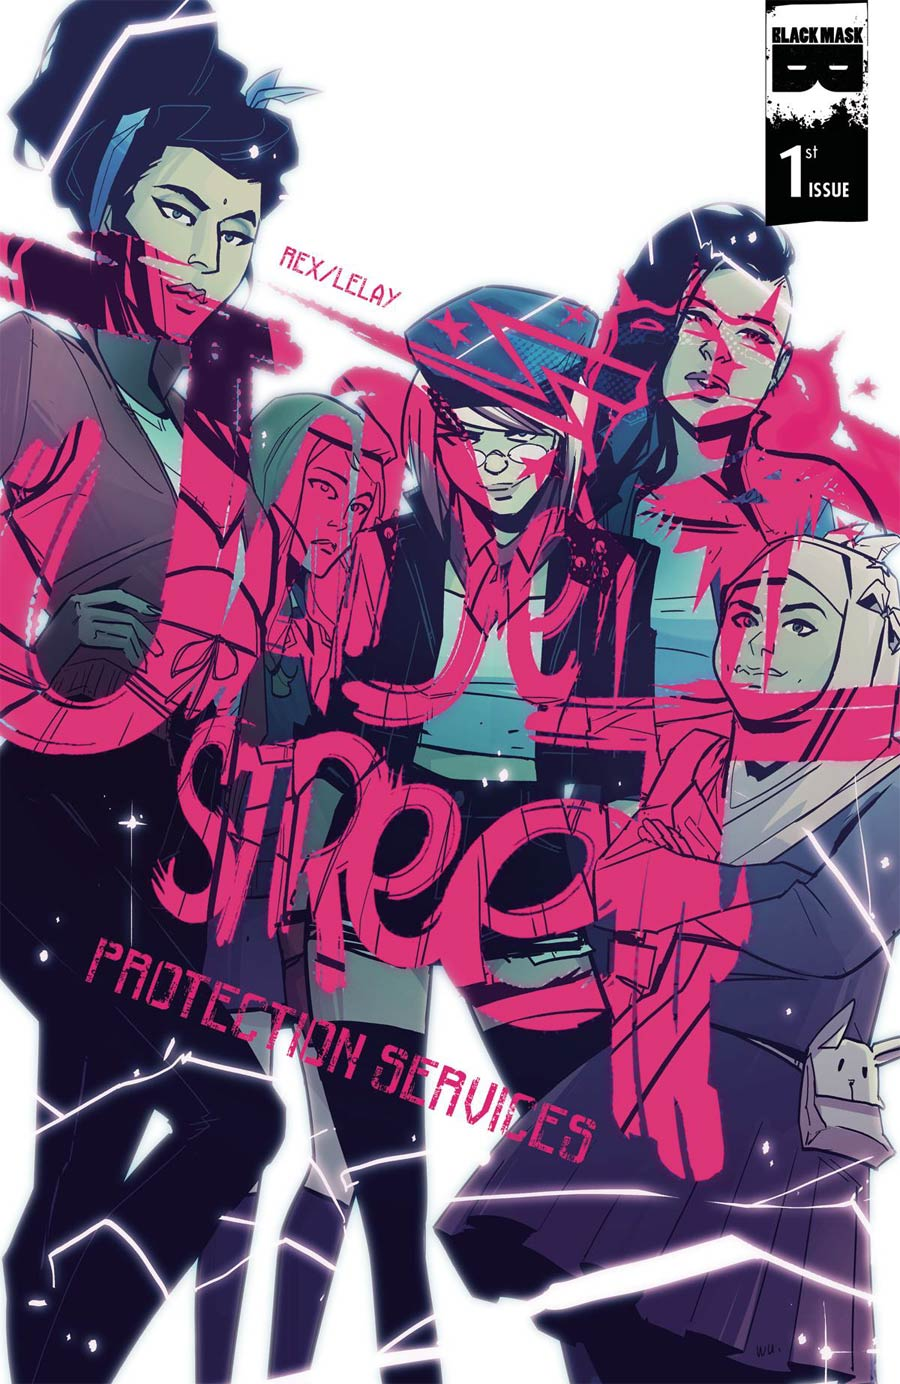 Jade Street Protection Services - cover by Annie Wu